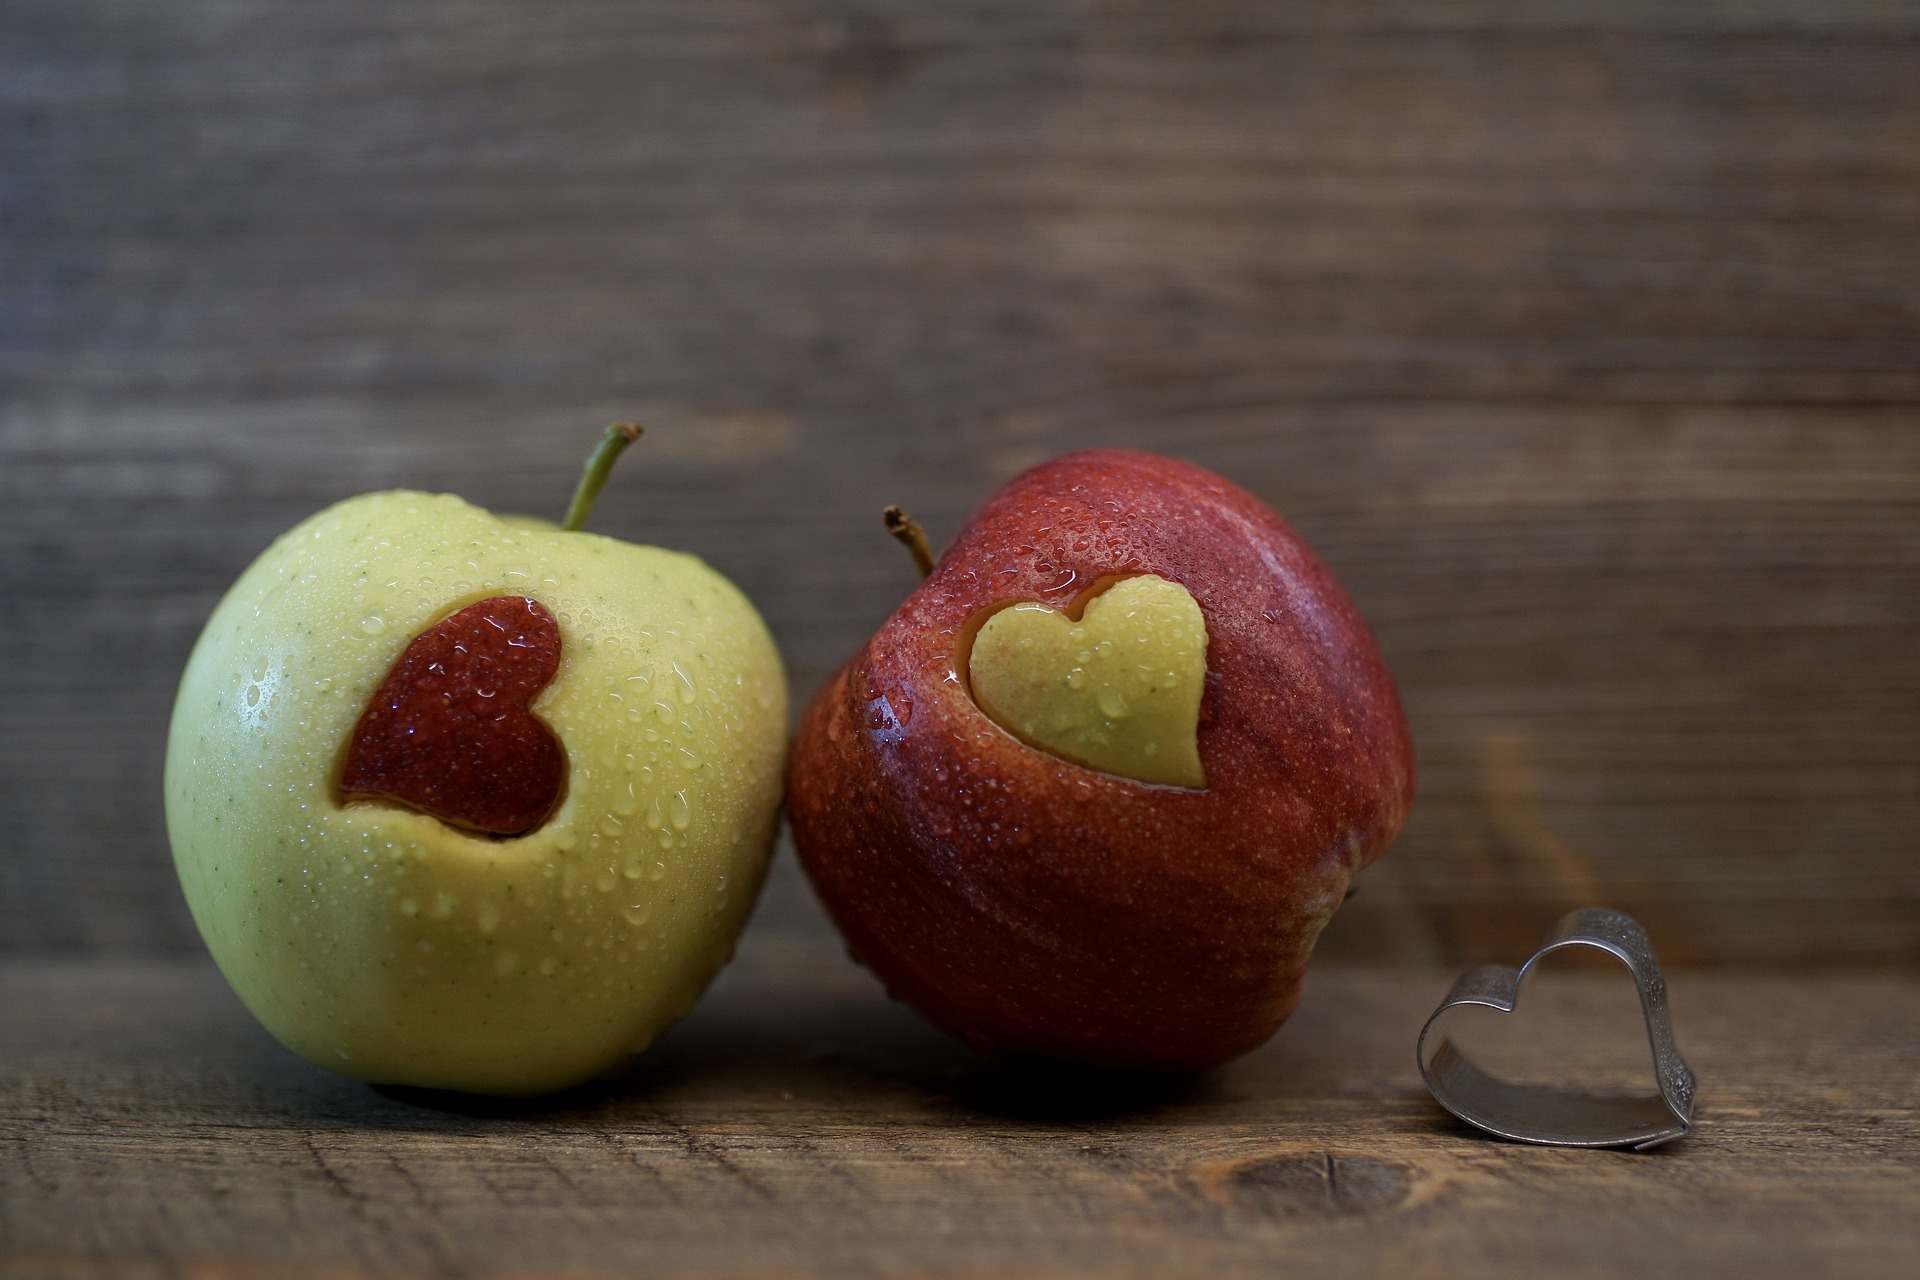 Two apples cut with hearts